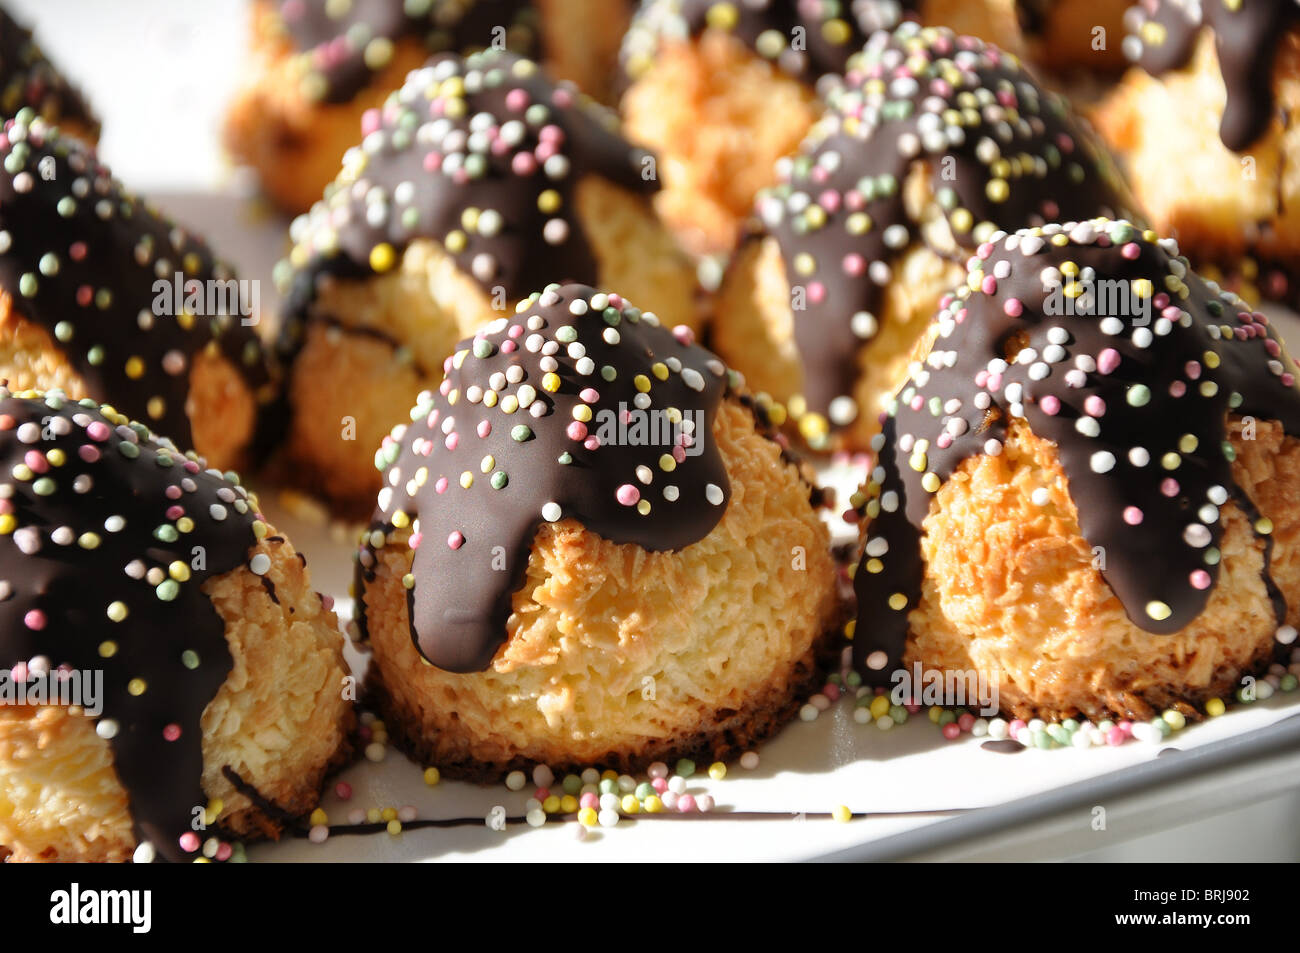 Coconut Macaroons with Chocolate and Sugar Candies served at a birthday party in Sweden - Stock Image